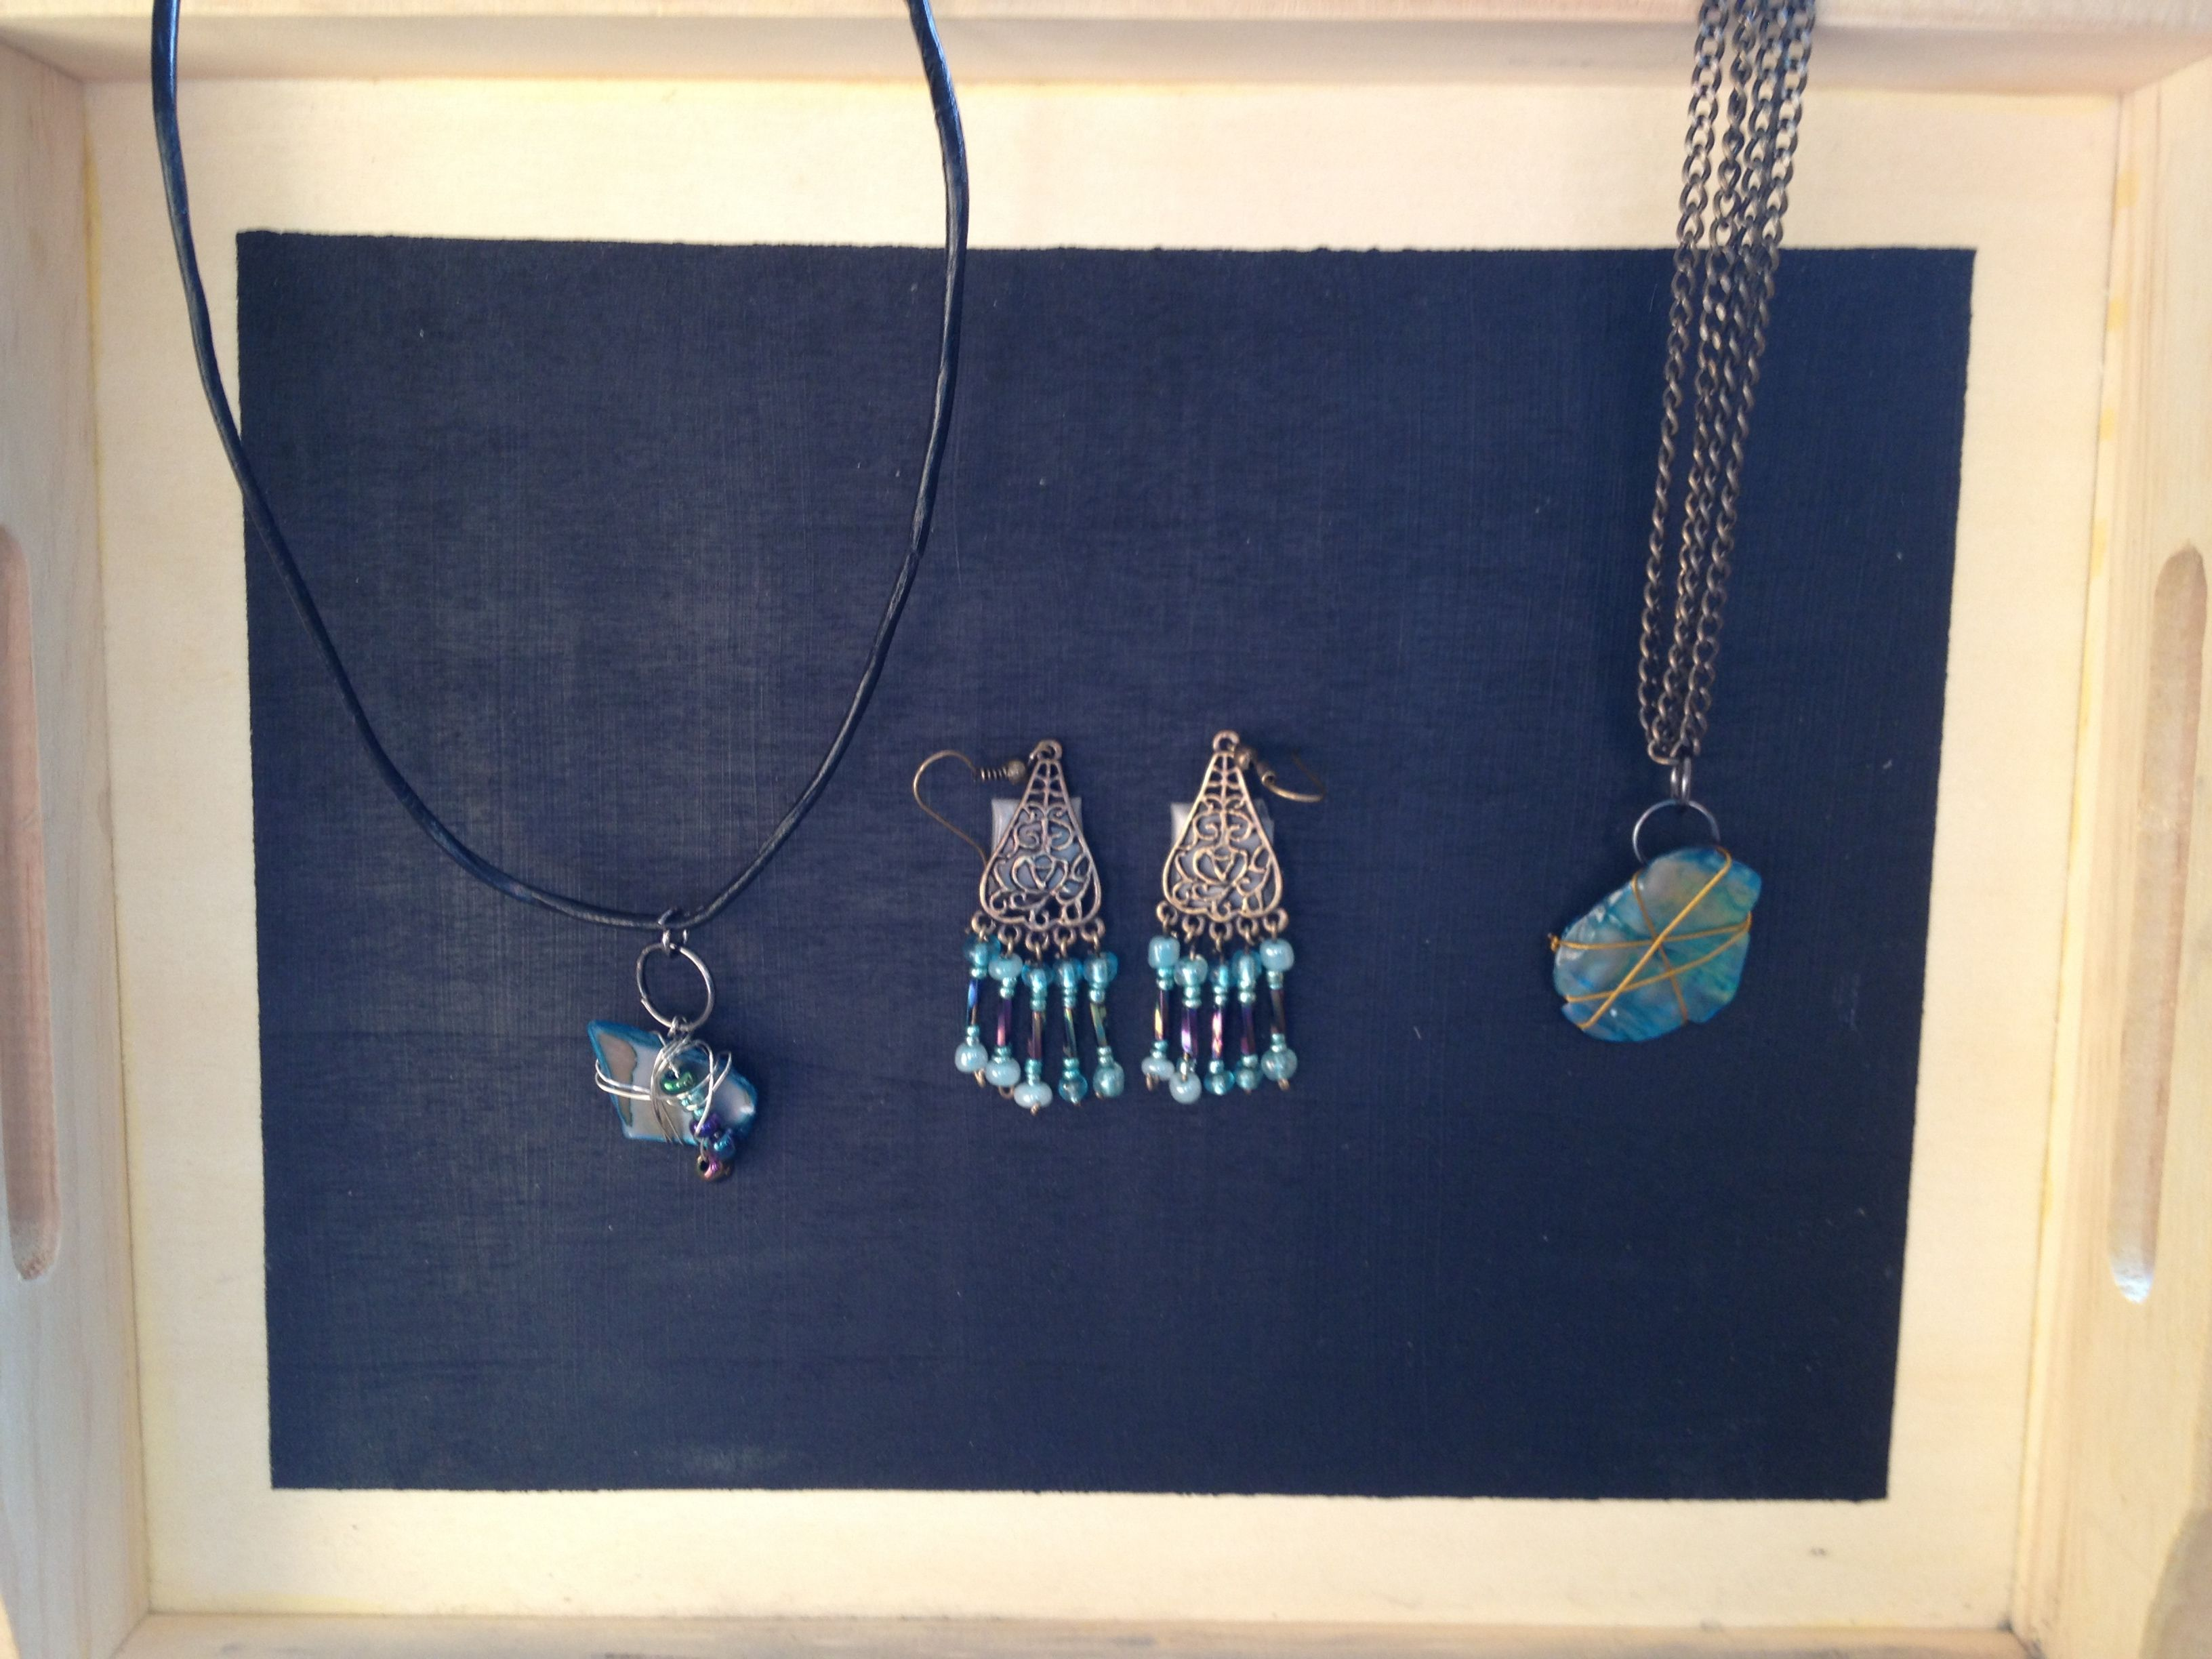 Easy to make homemade jewelry. Made with love in one day